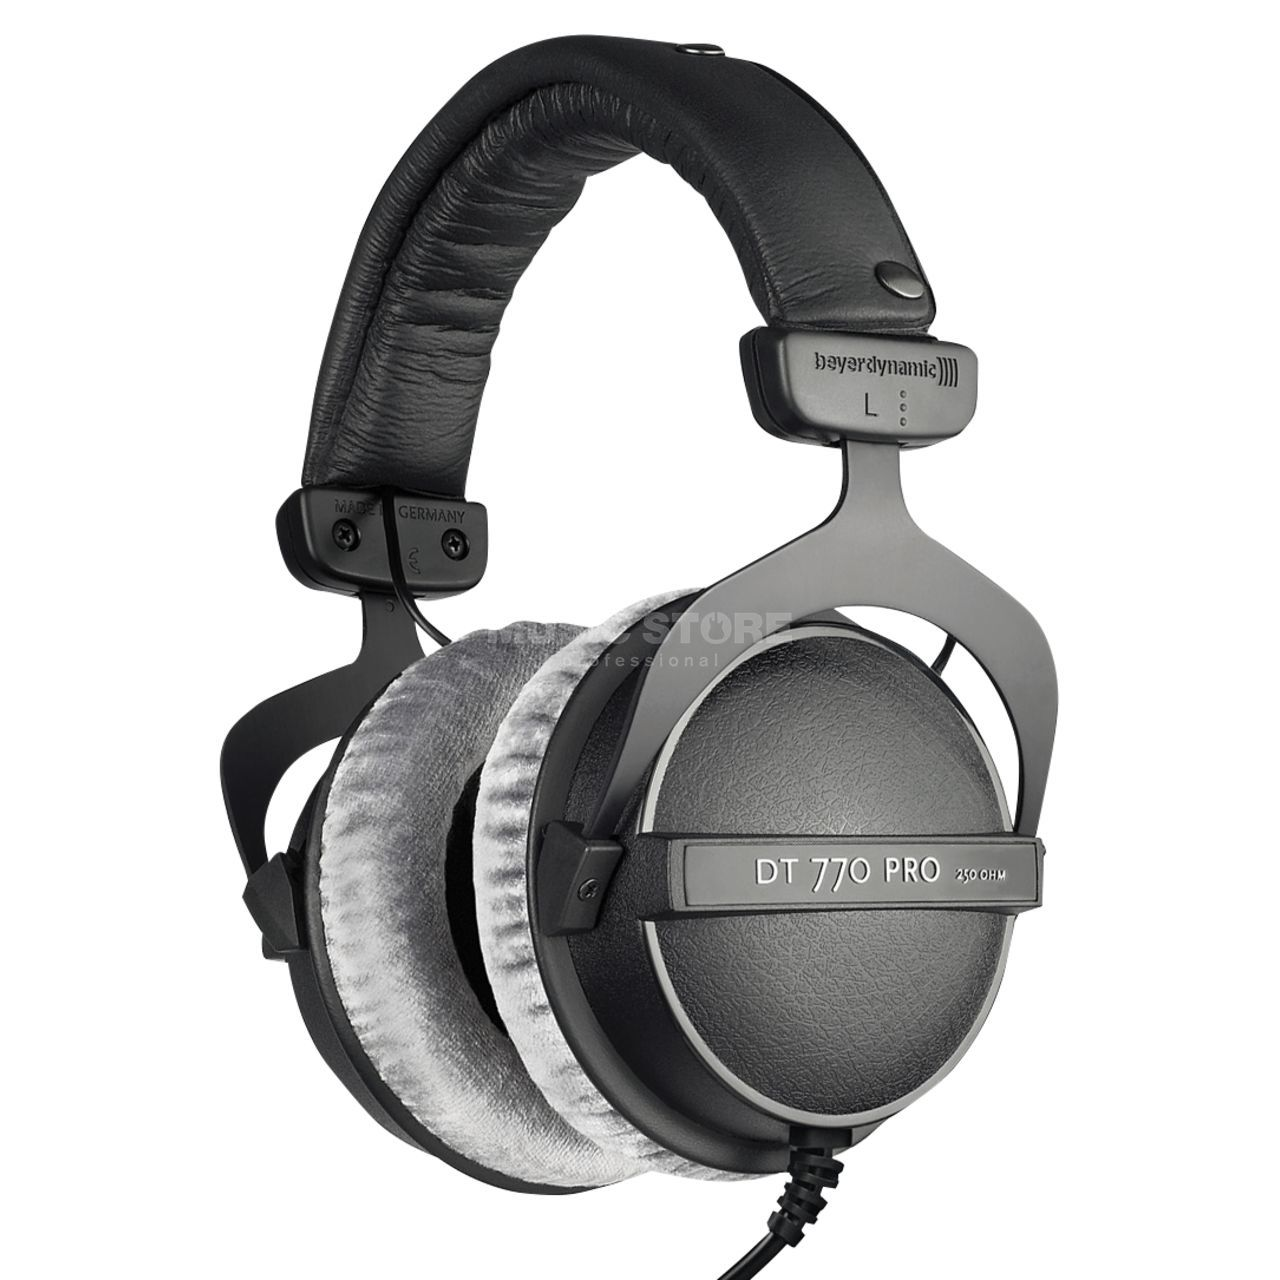 beyerdynamic dt 770 pro 250 ohm closed studio headphones dv247 en gb. Black Bedroom Furniture Sets. Home Design Ideas